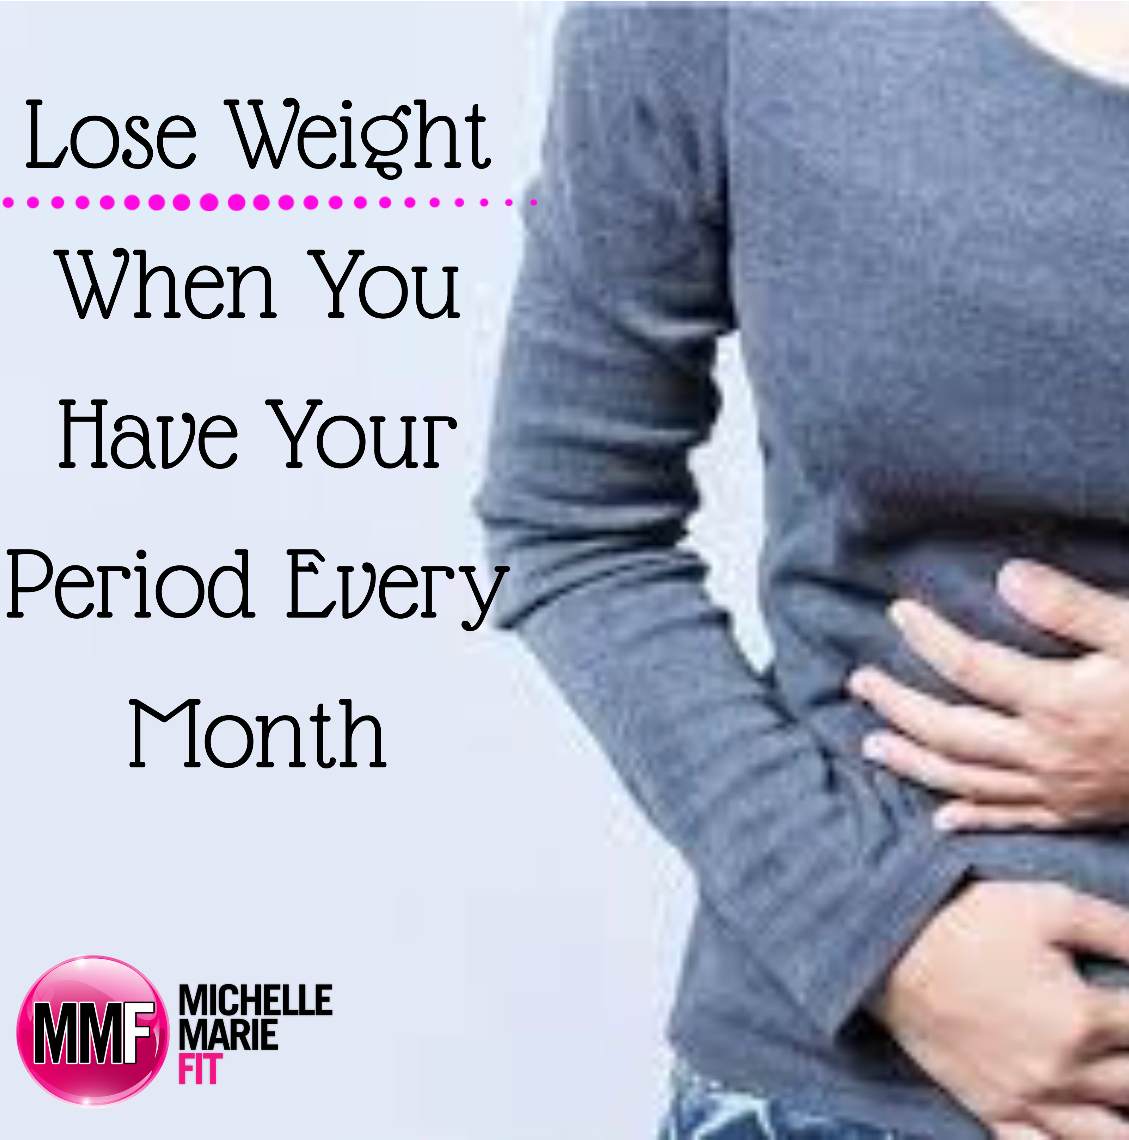 Lose weight when you have your period every month michelle marie fit ccuart Choice Image